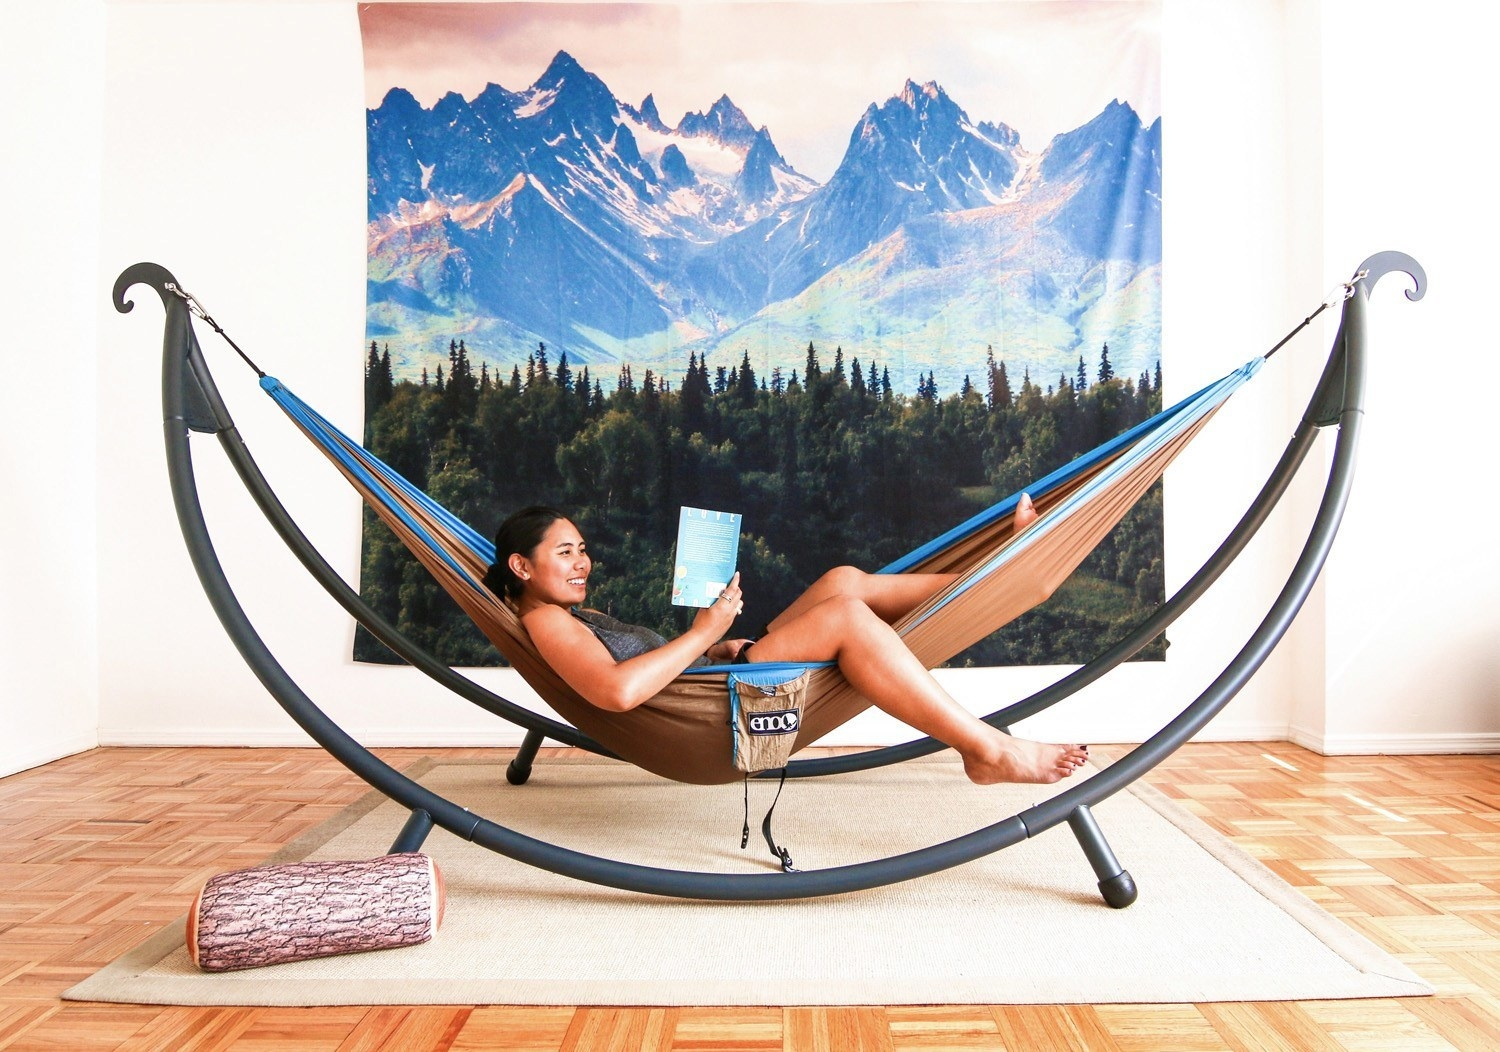 A person relaxing indoors on a hammock supported by the curved hammock stand